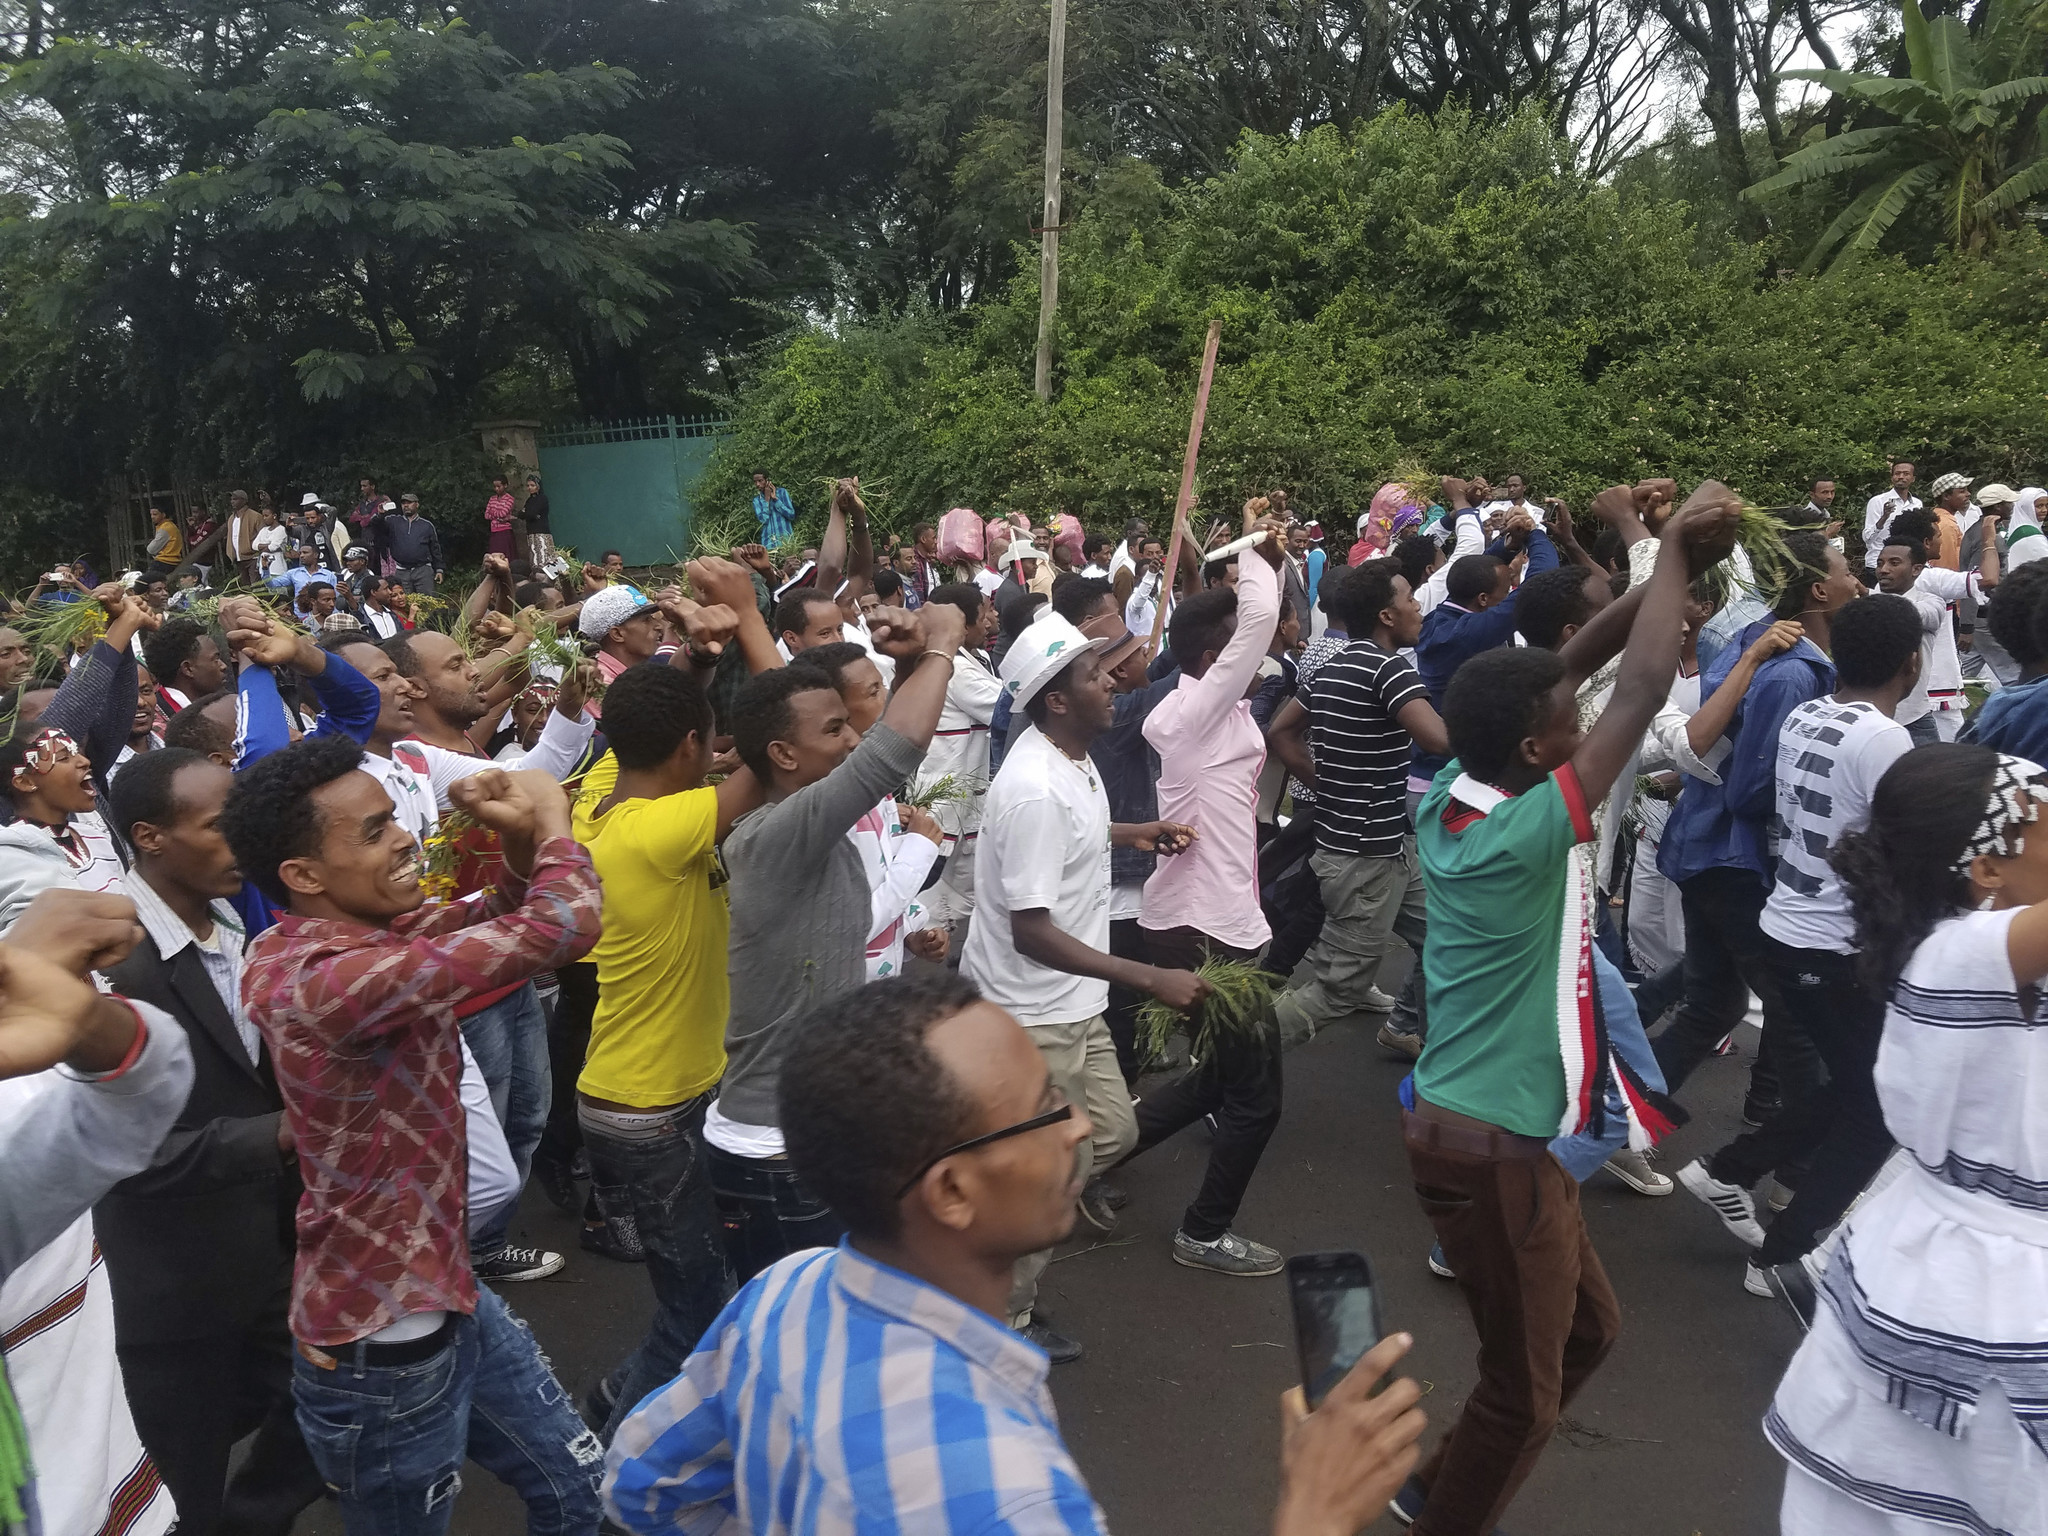 52 Confirmed Dead In Stampede During Ethiopia Religious